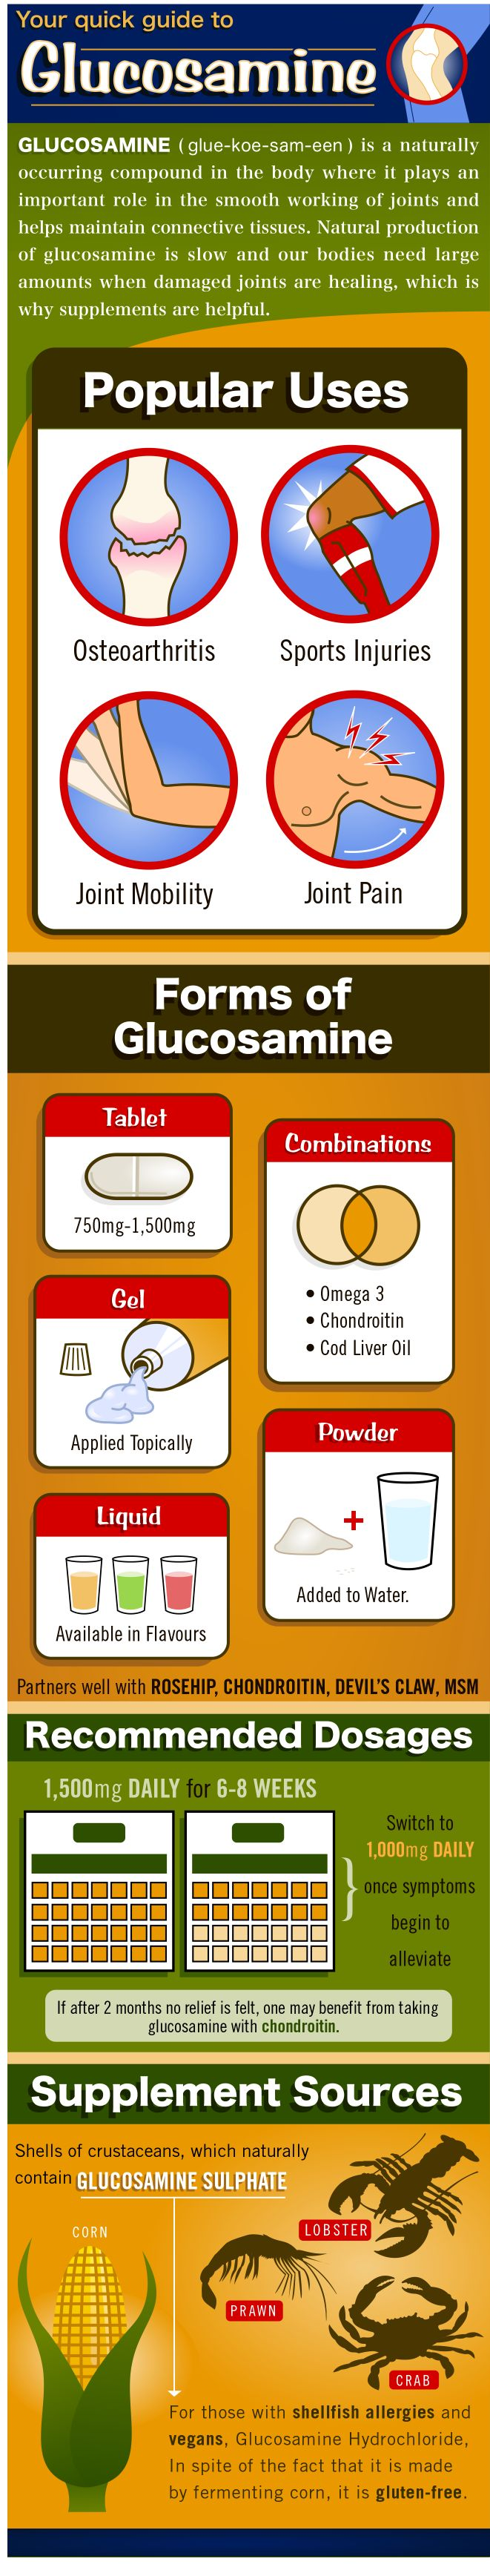 This is an easy to read guide to glucosamine and its benefits.